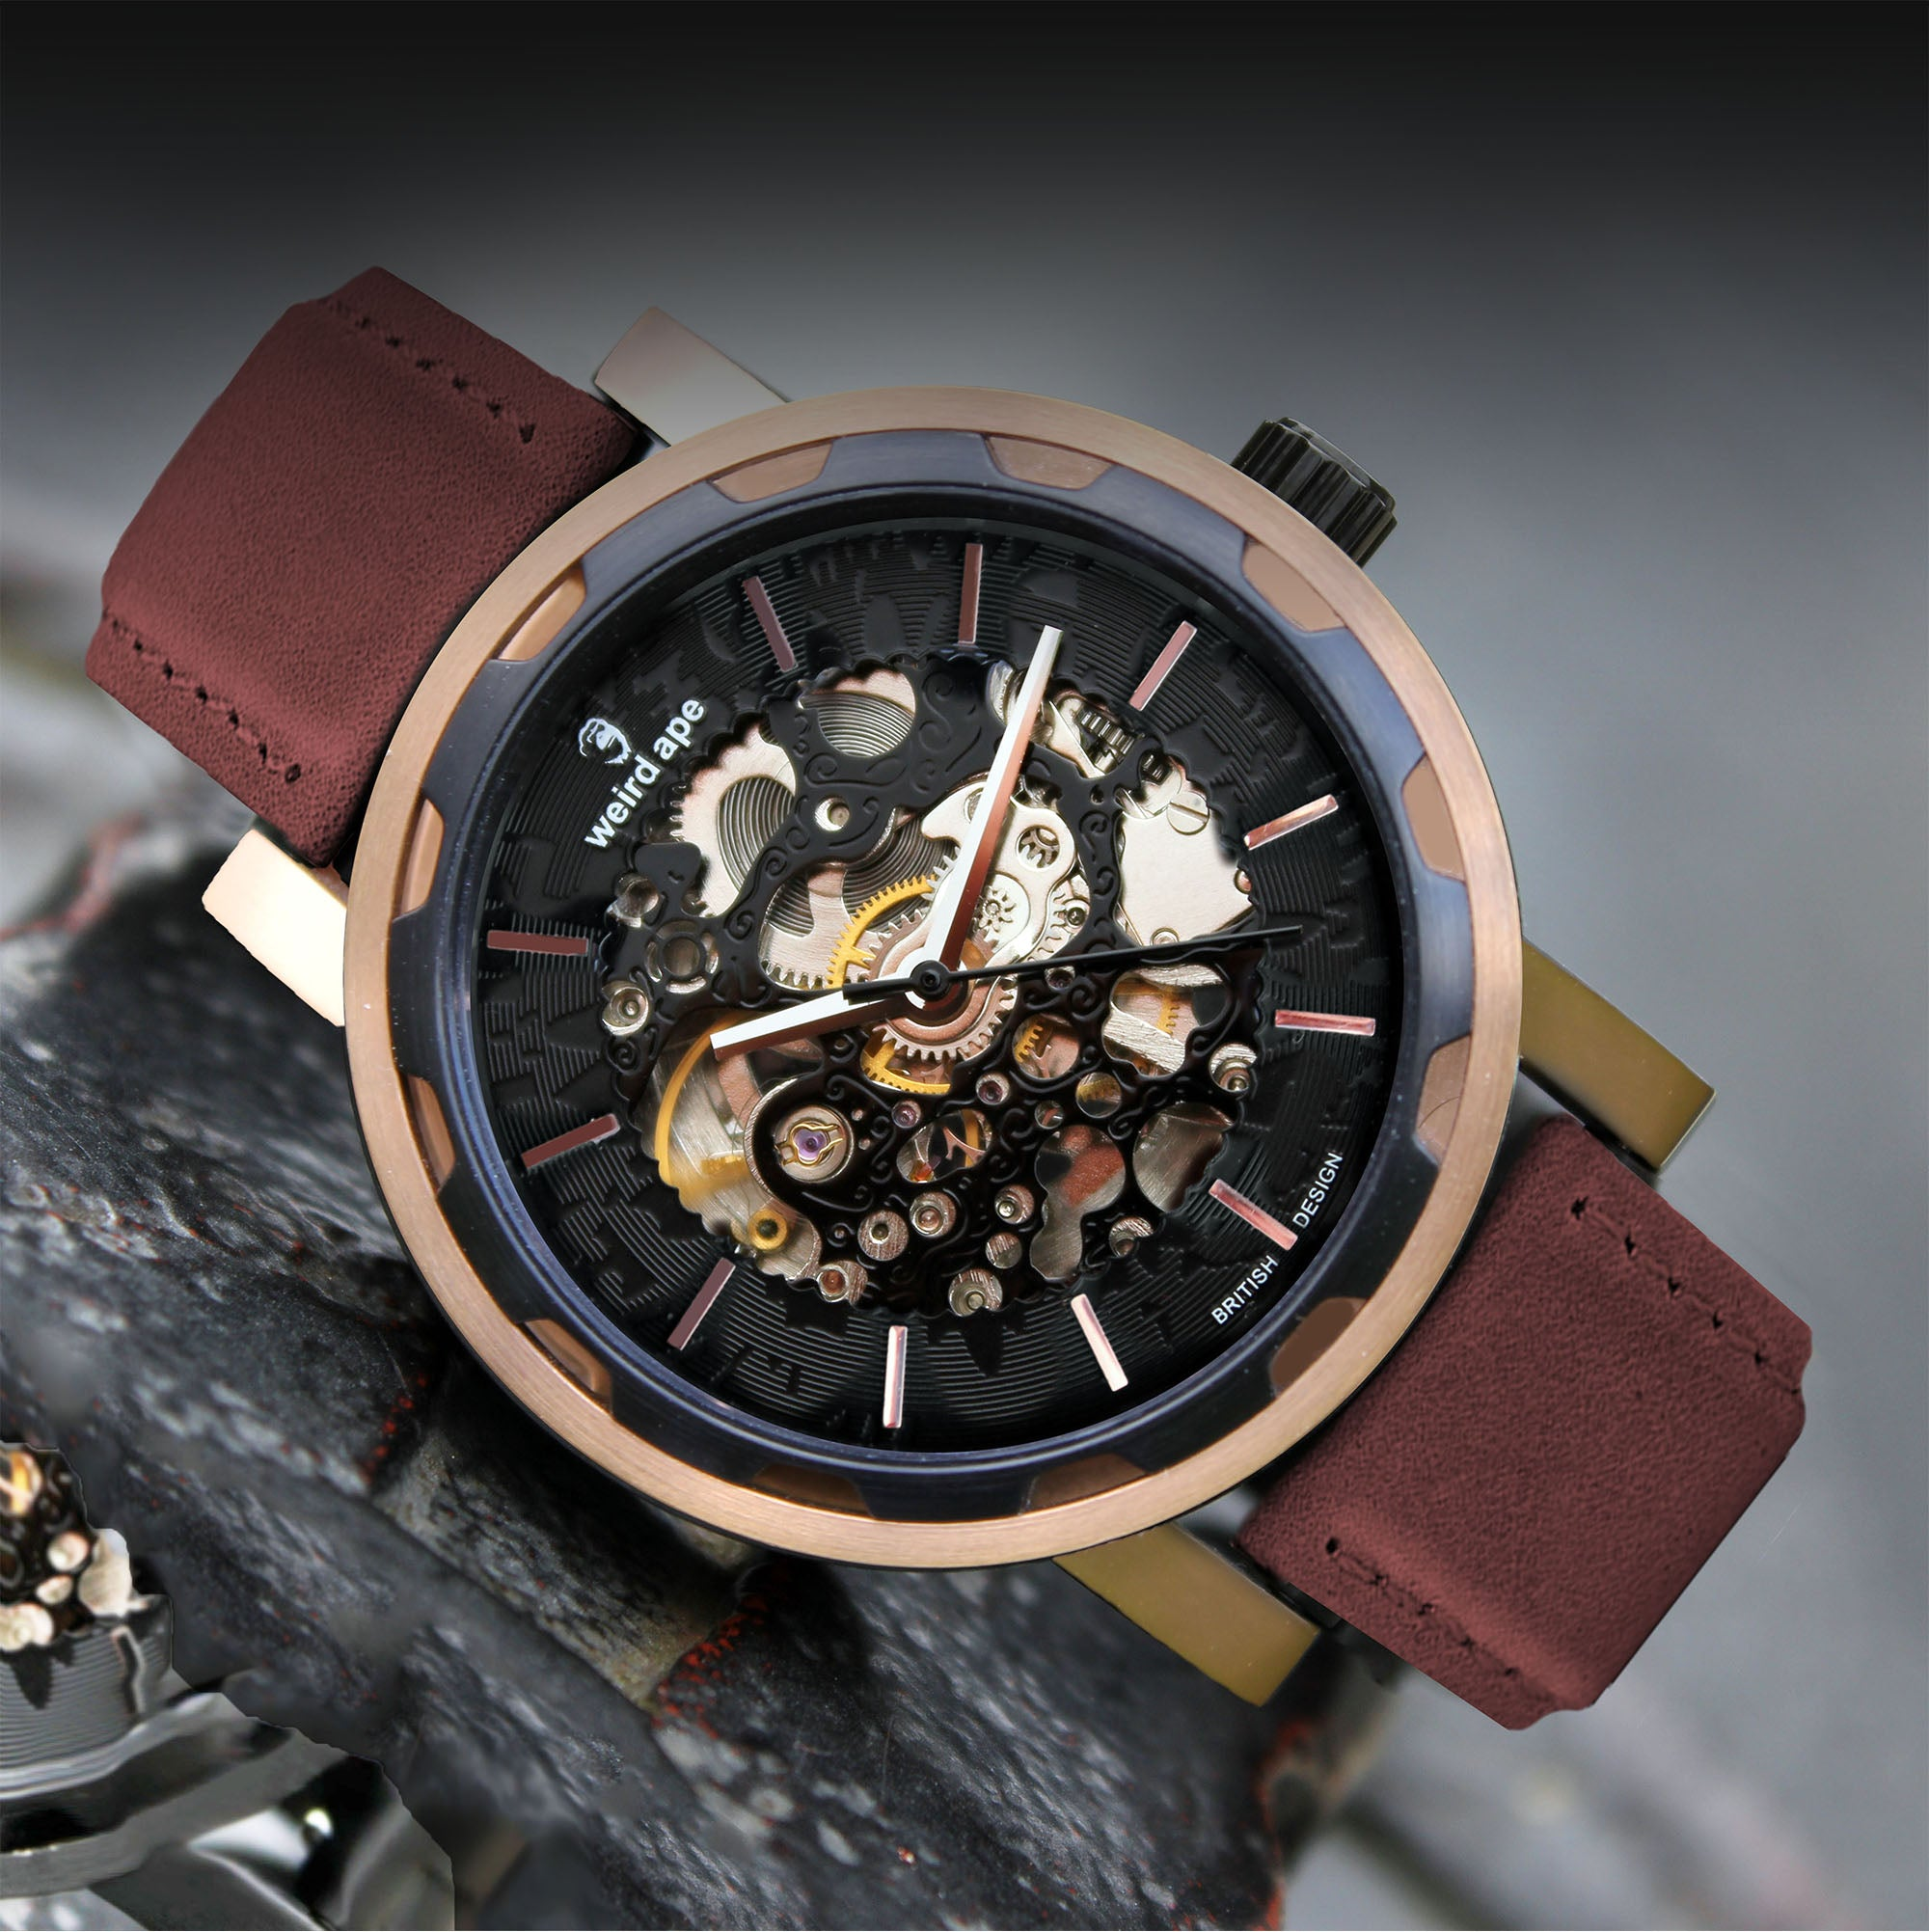 A picture of a rose gold mechanical watch with a burgundy leather strap.